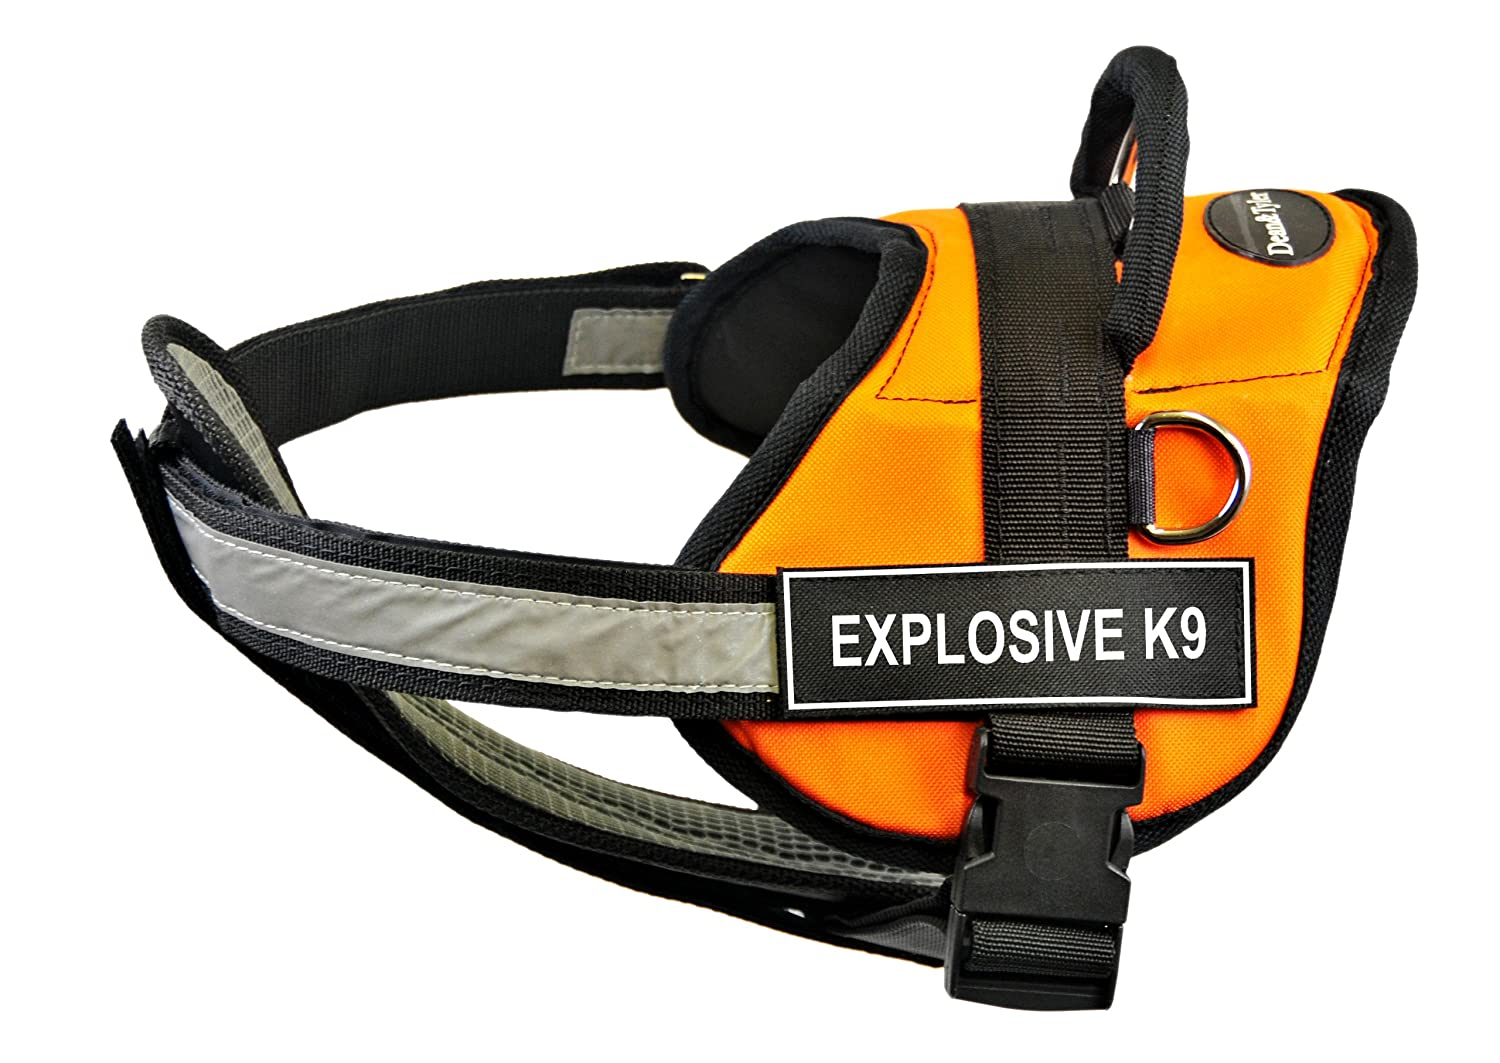 Dean & Tyler 25-Inch to 34-Inch Explosive K9 Dog Harness with Padded Reflective Chest Straps, Small, orange Black